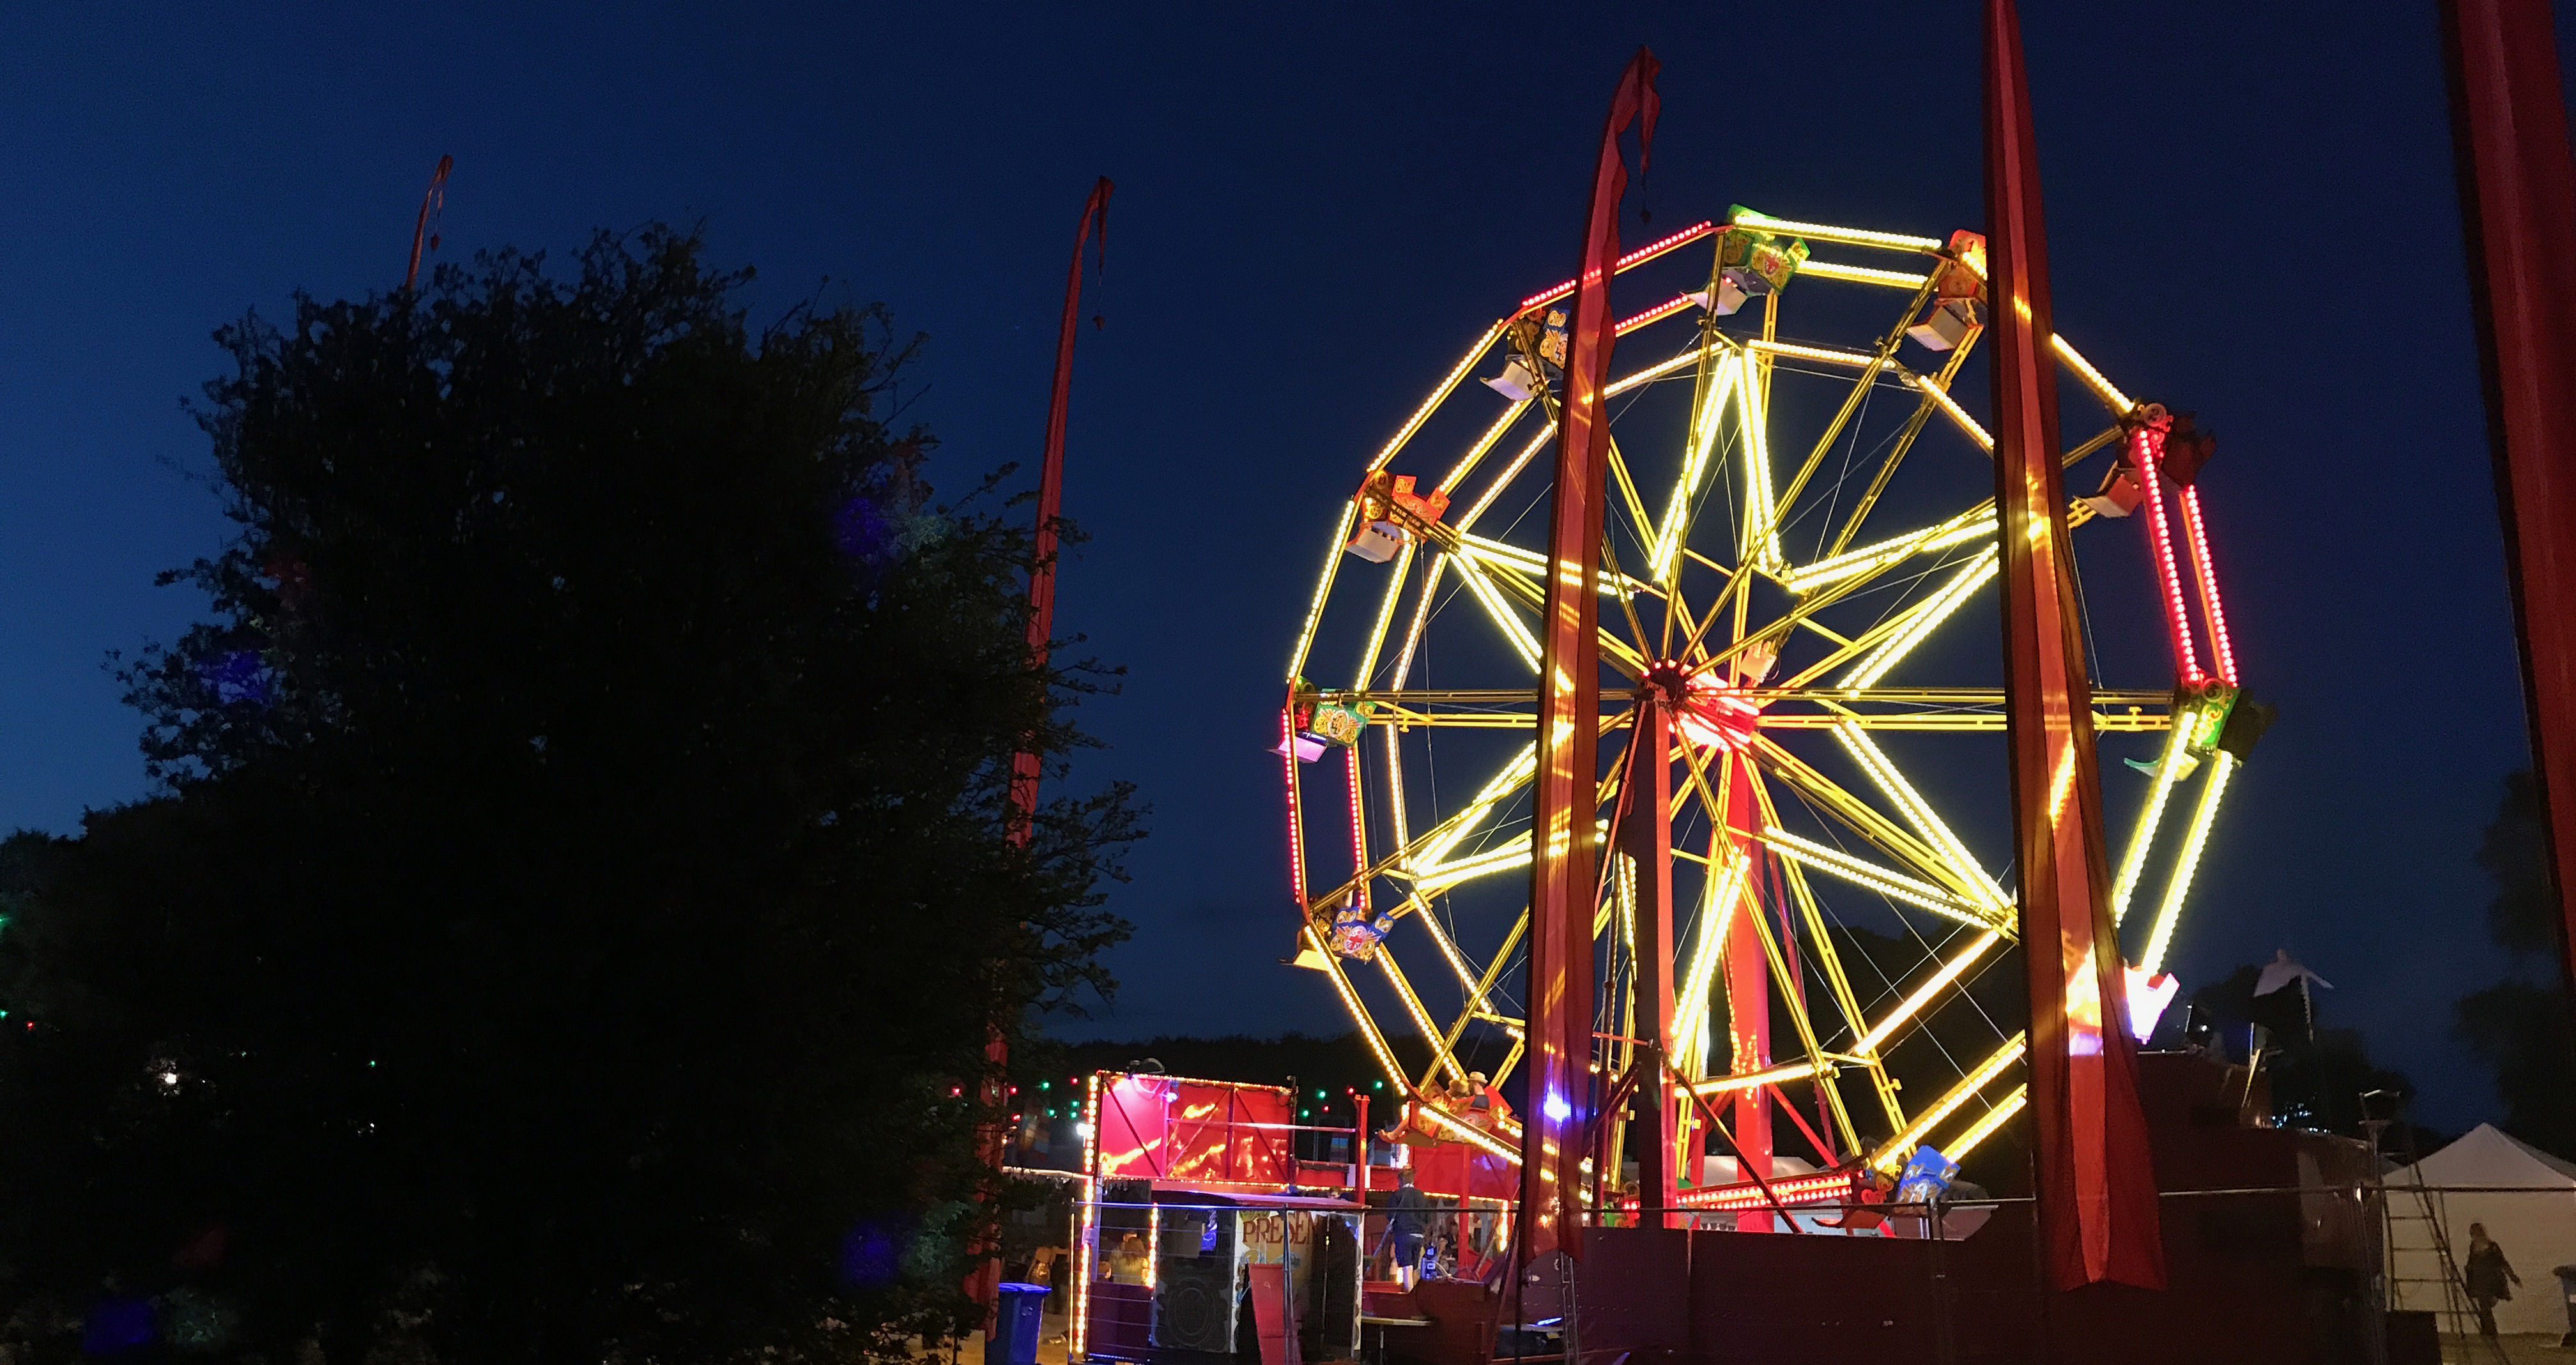 The ferris wheel all lit up